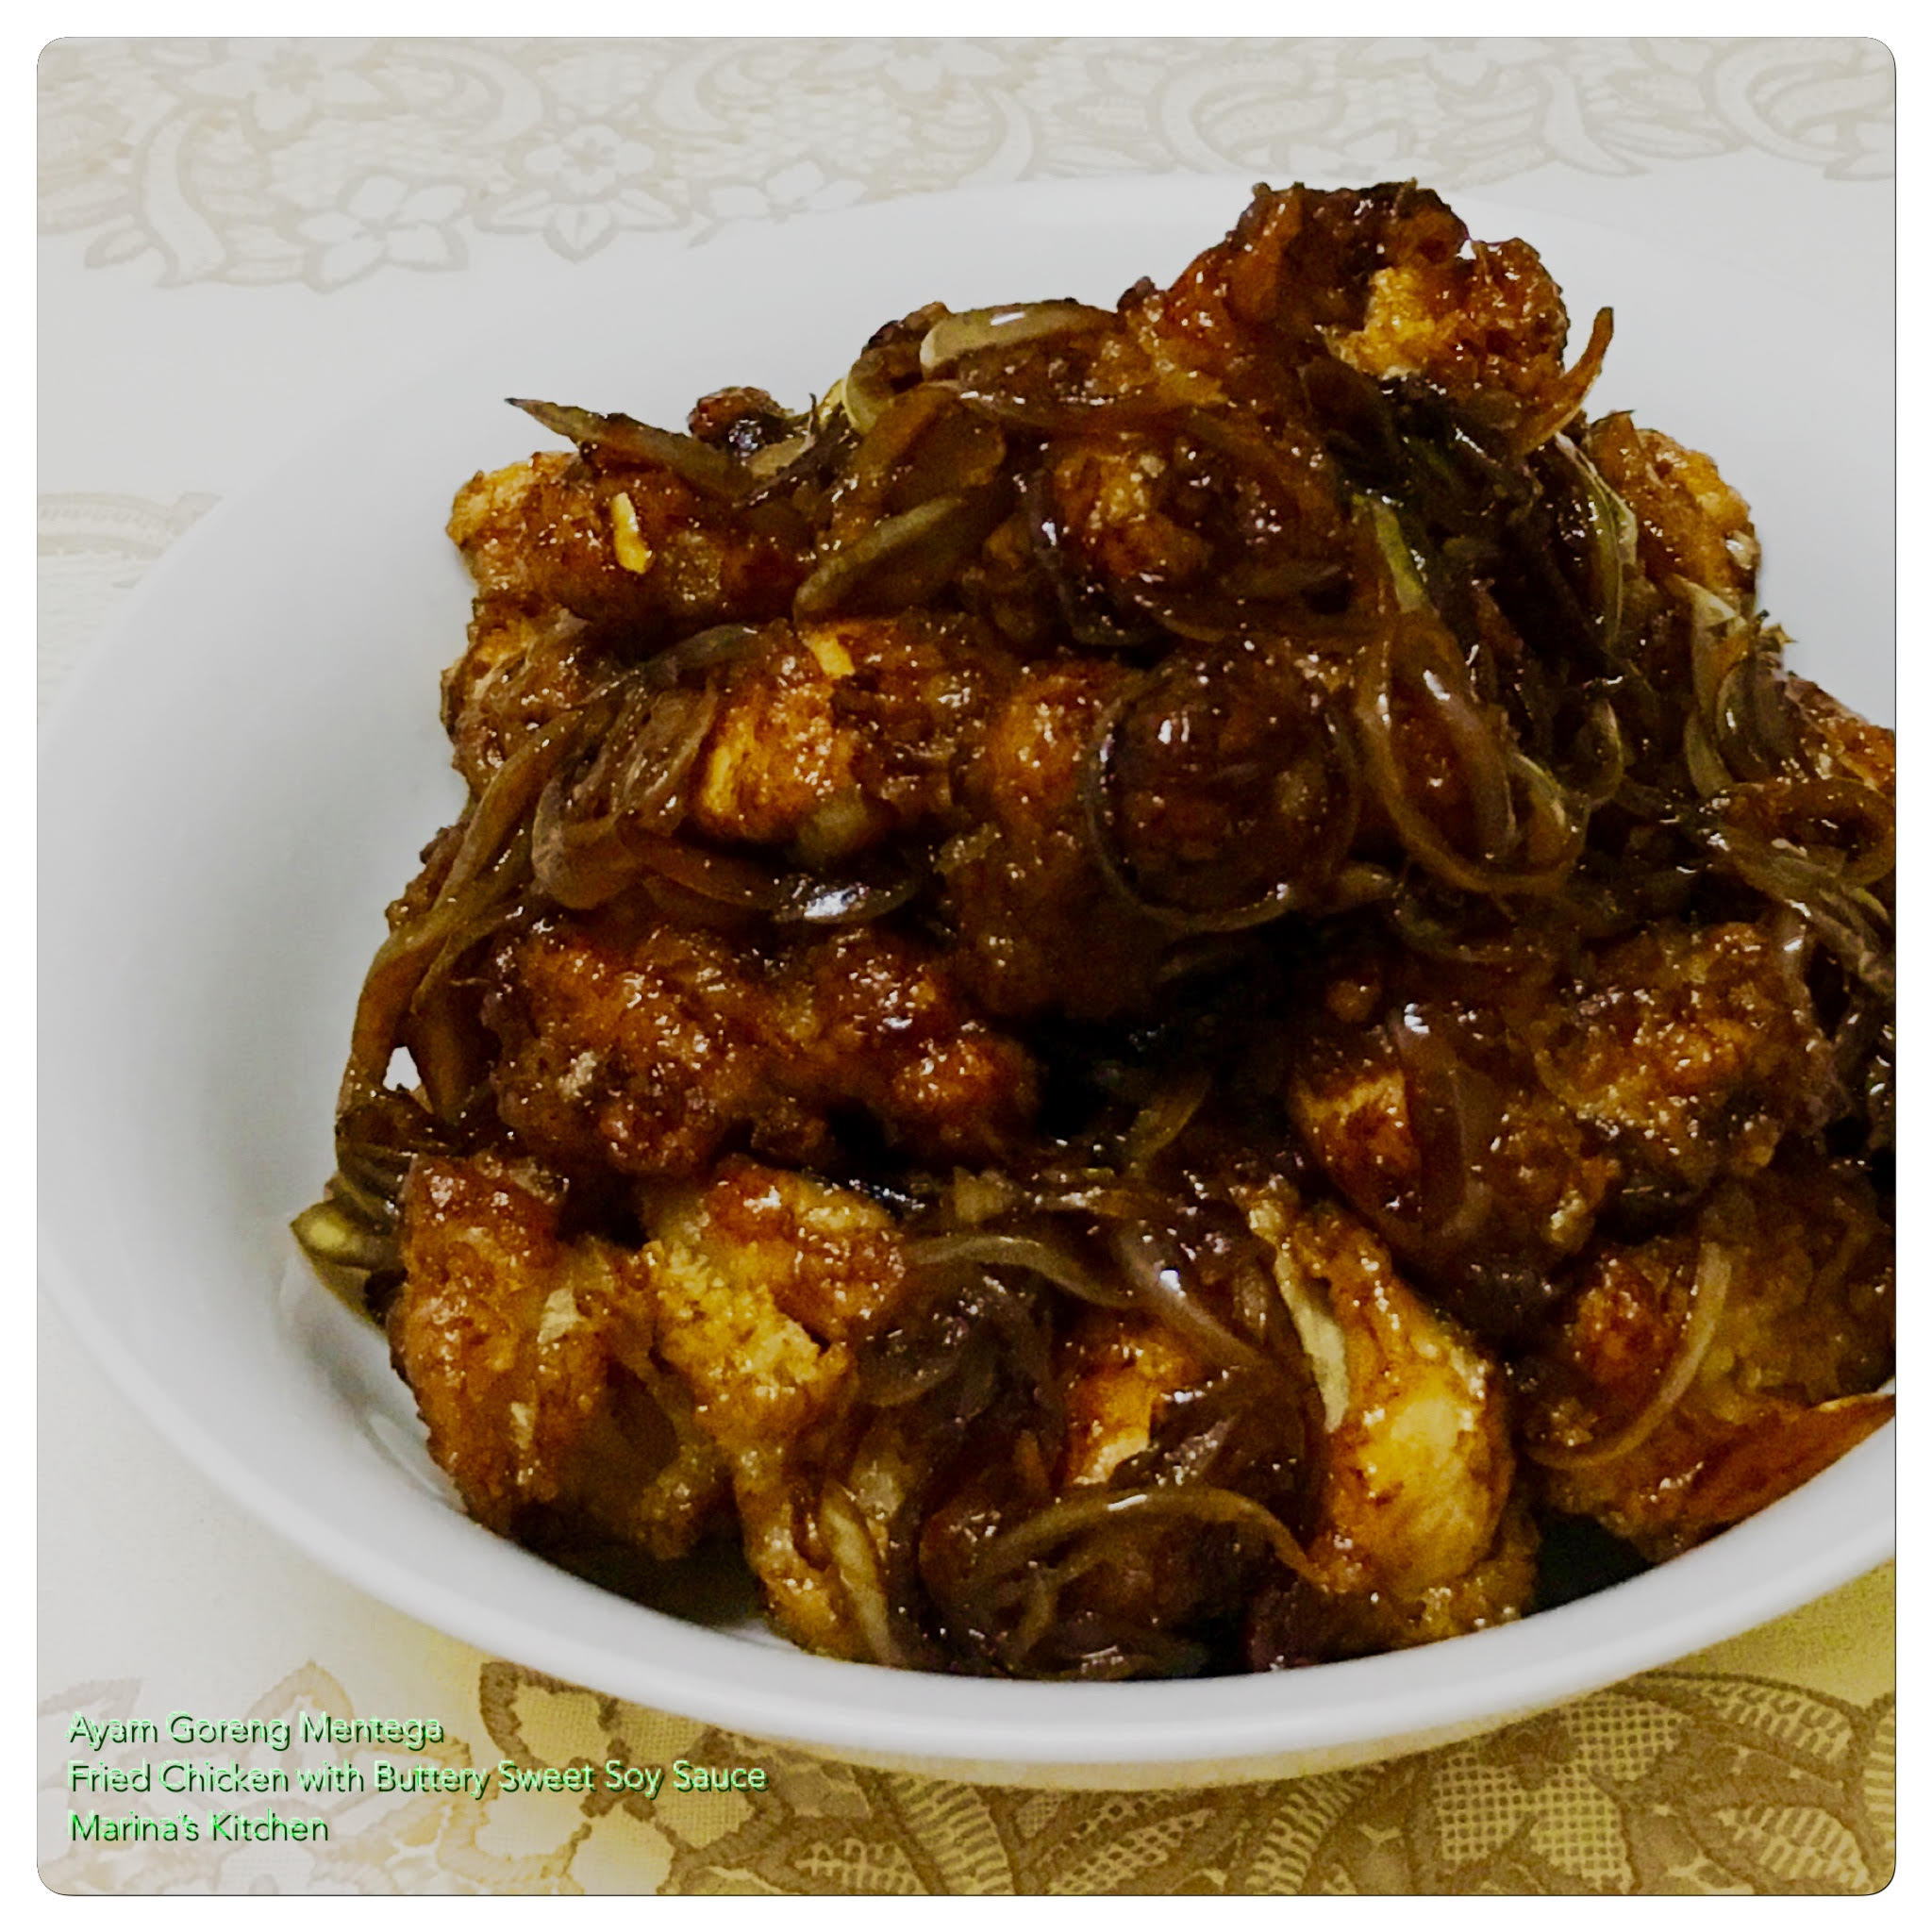 Ayam Goreng Mentega Fried Chicken With Buttery Sweet Soy Sauce Marina S Kitchen